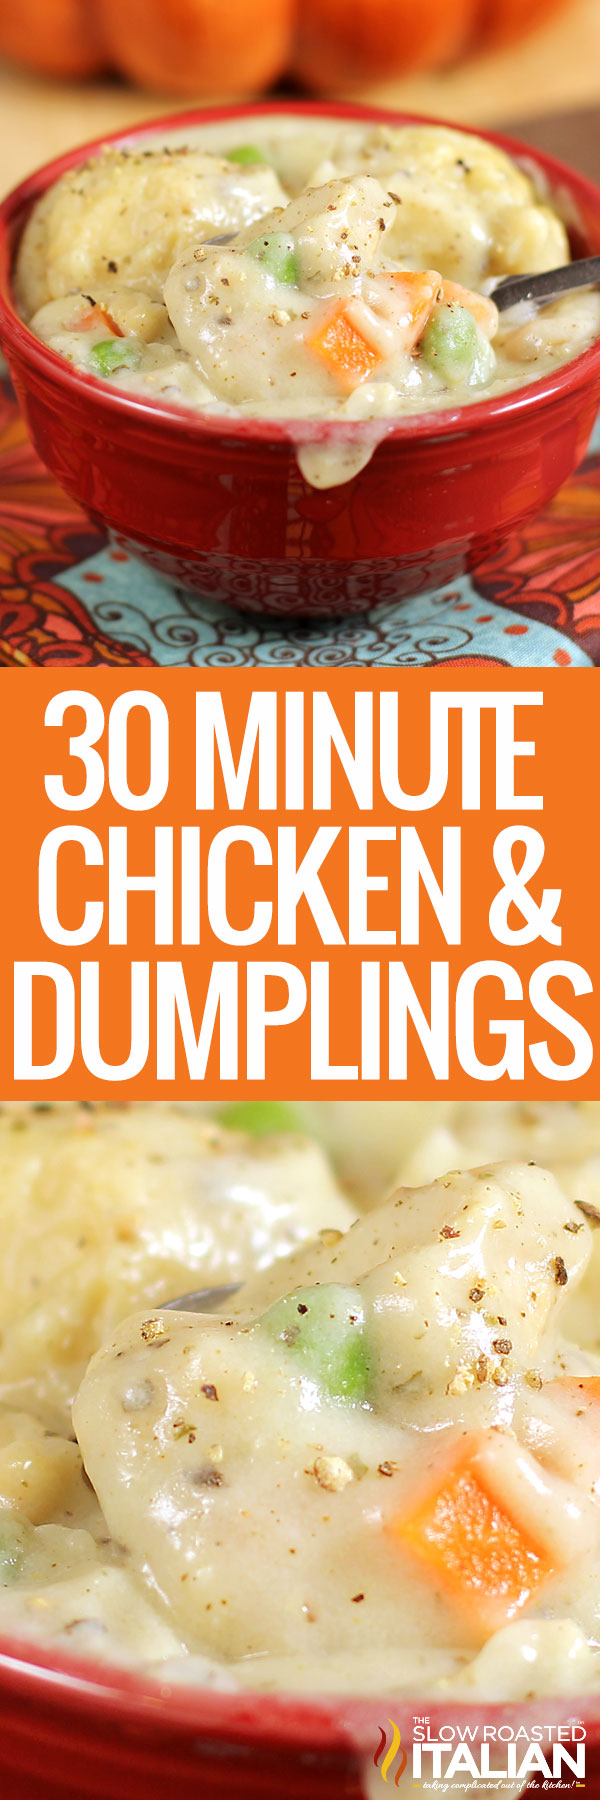 titled photo (and shown): 30 Minute Chicken and Dumplings Recipe